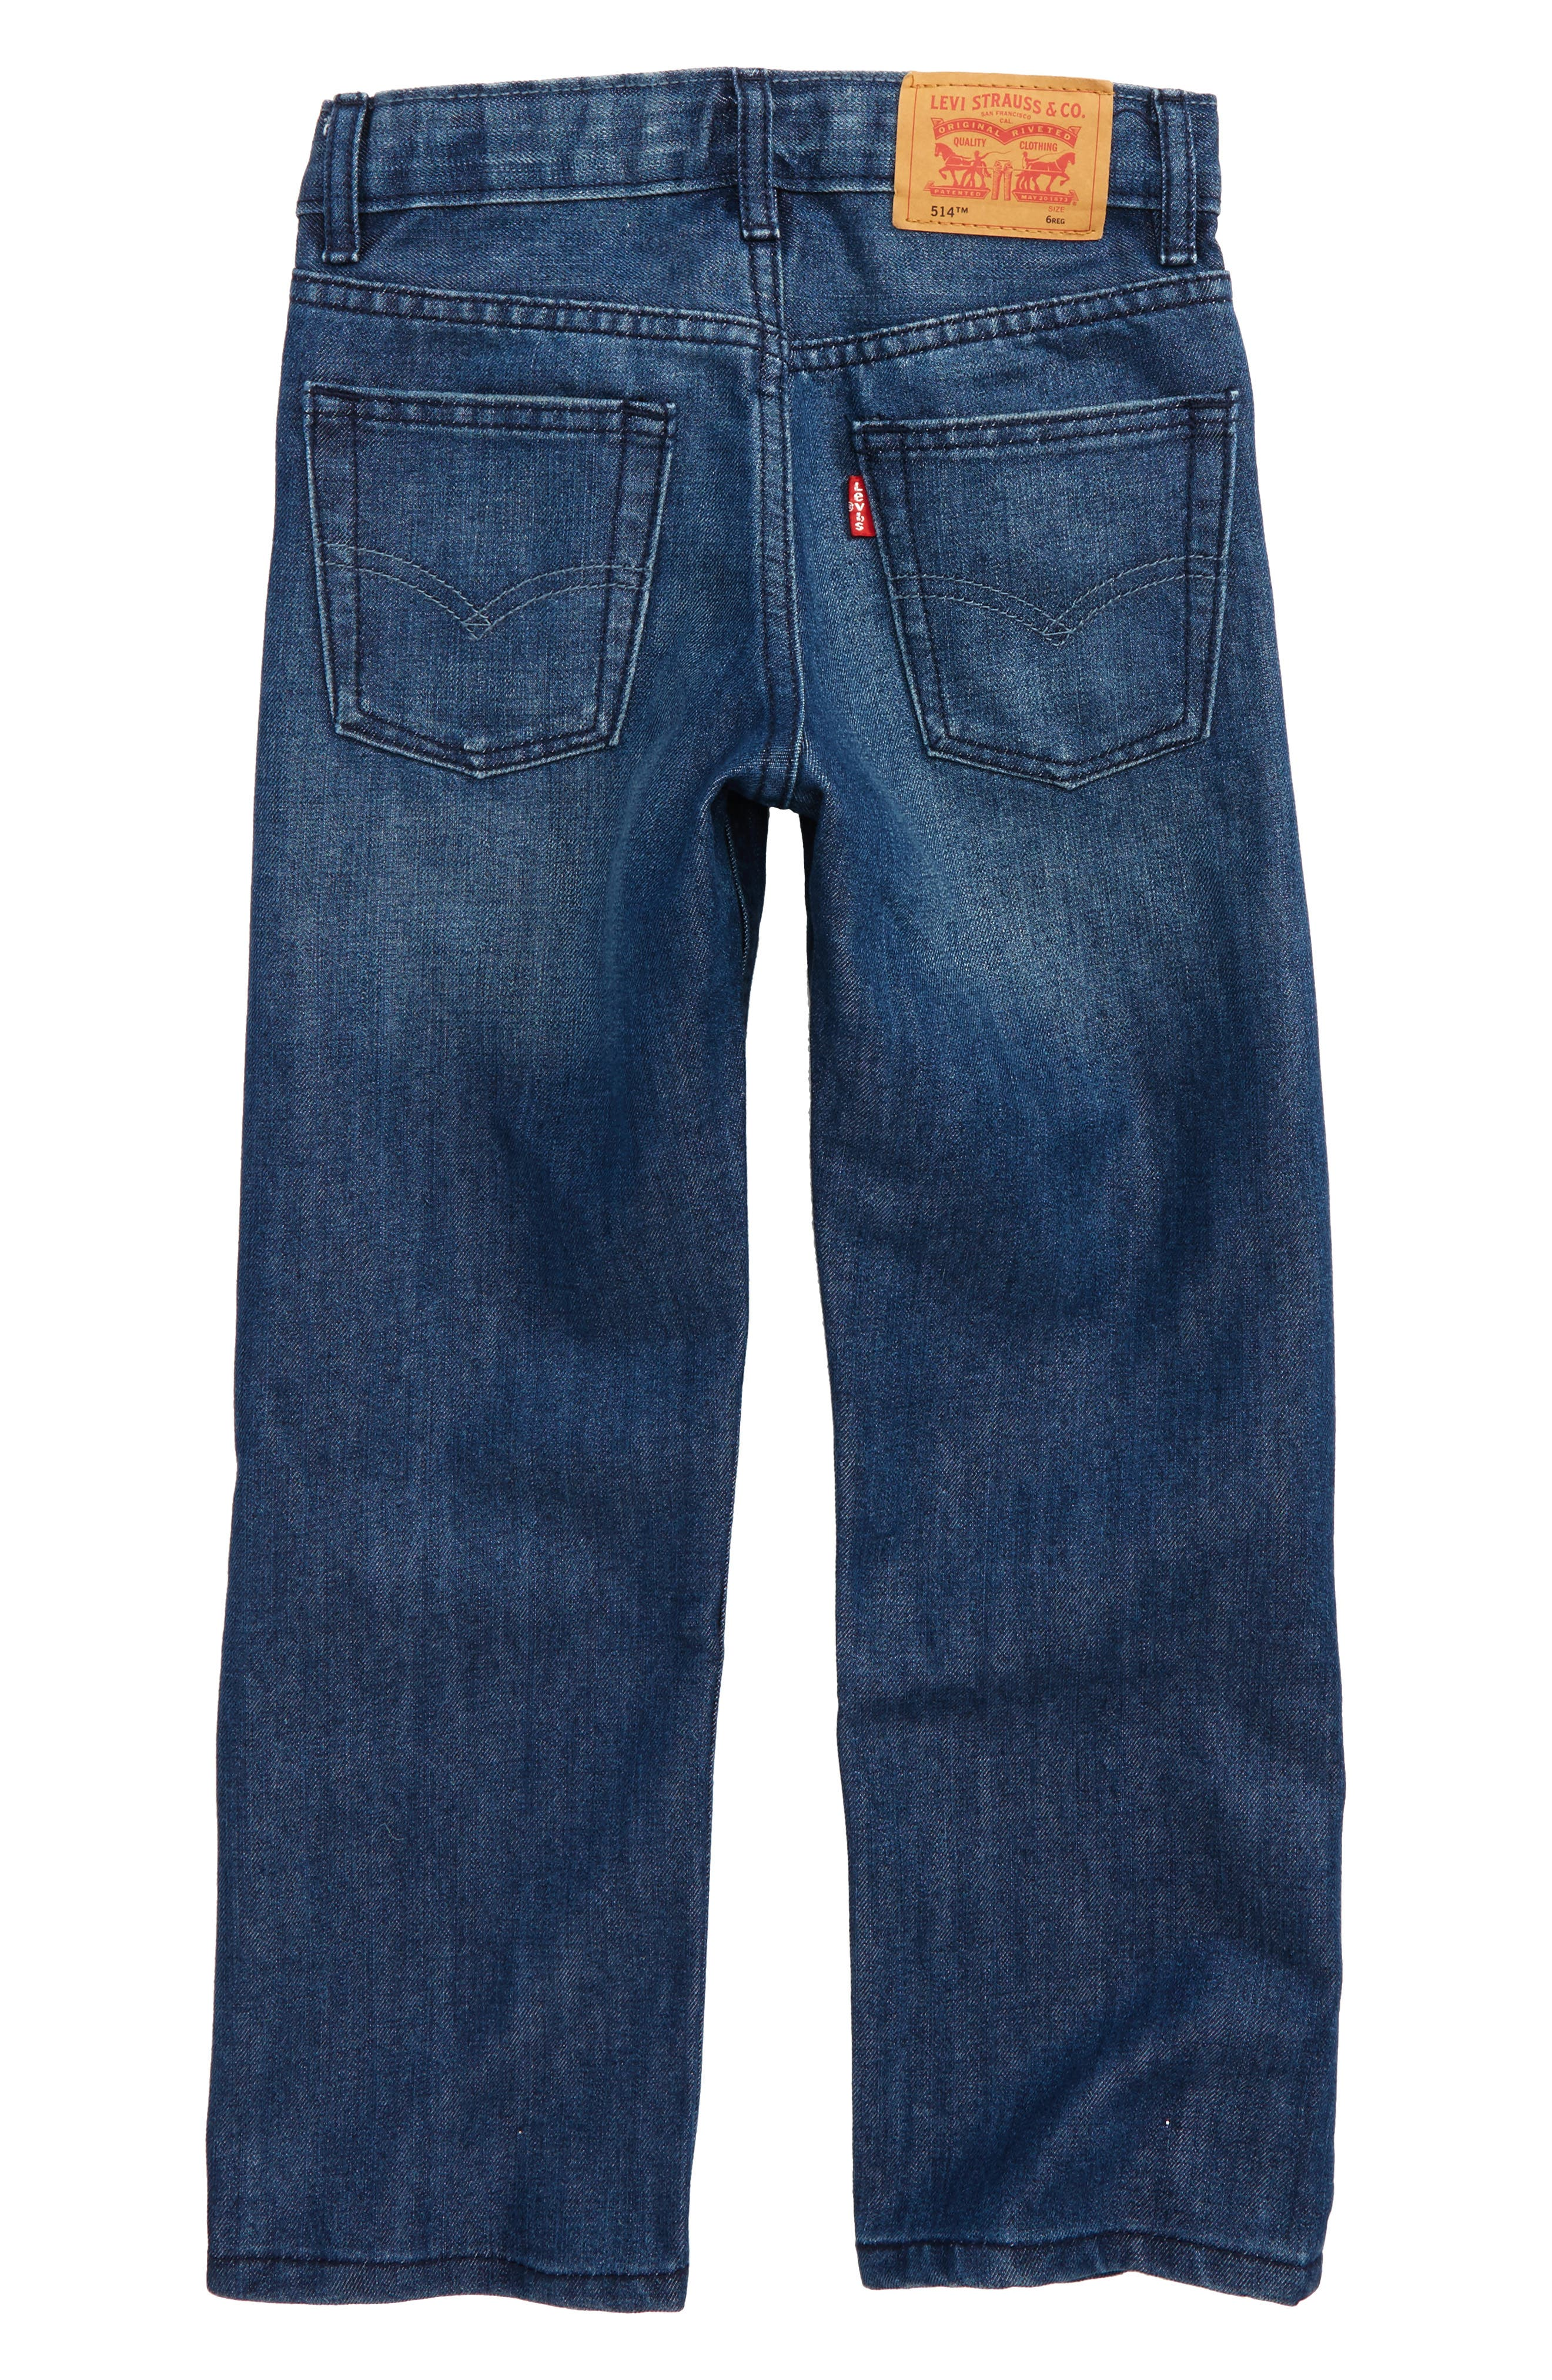 514<sup>™</sup> Straight Leg Jeans,                             Alternate thumbnail 2, color,                             421